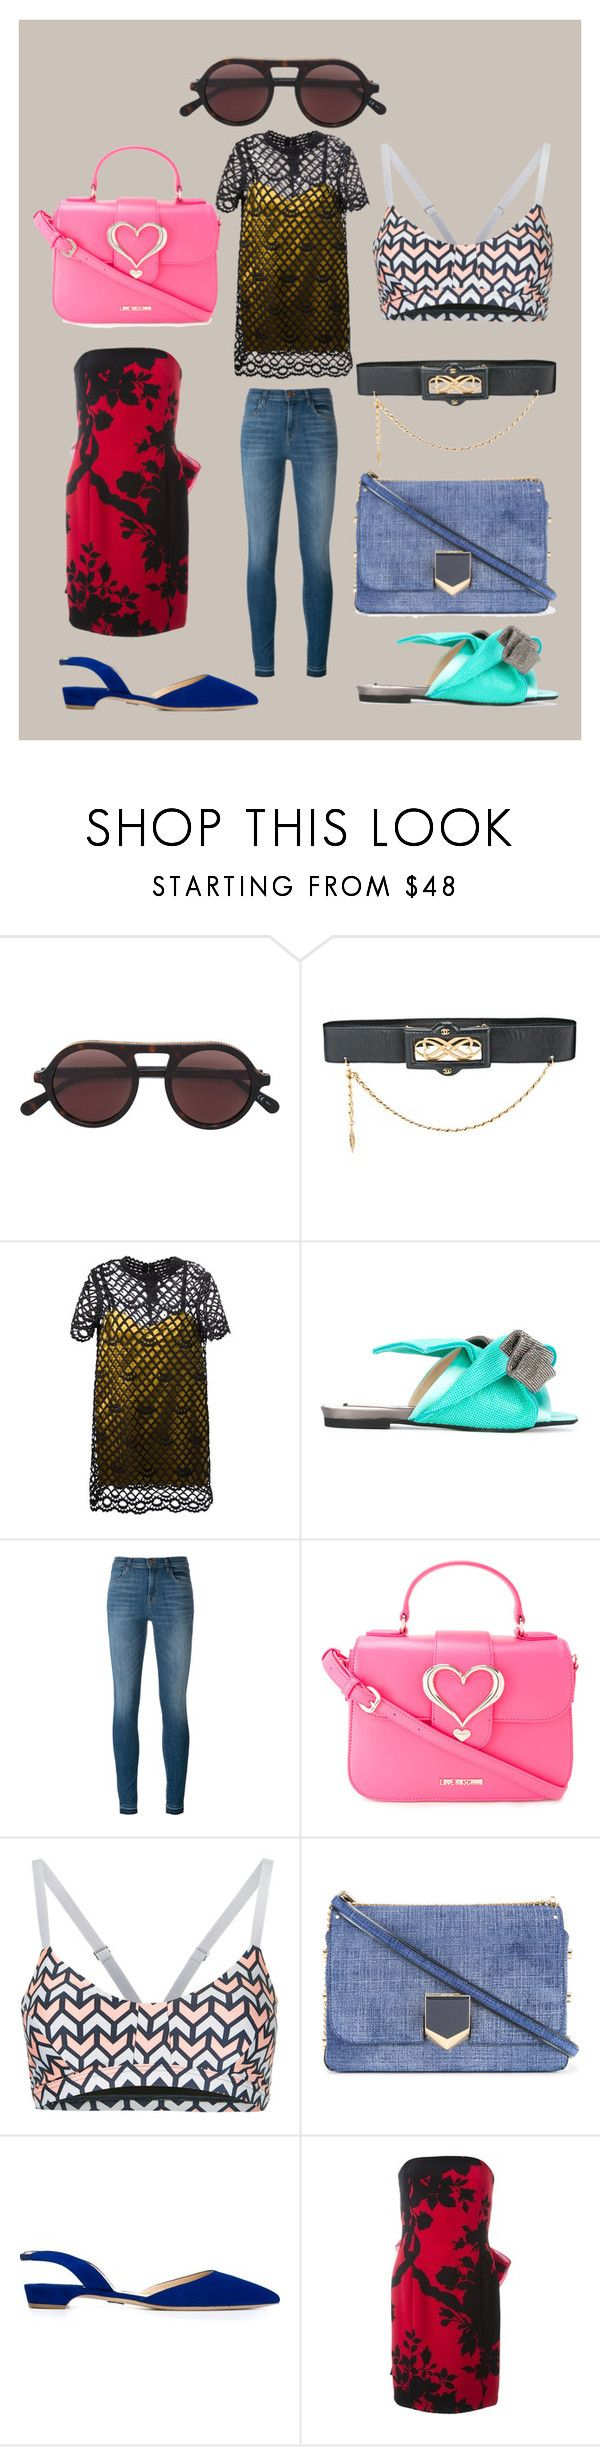 """""""fashion trends"""" by monica022 ❤ liked on Polyvore featuring STELLA McCARTNEY, Chanel, Marc Jacobs, J Brand, Love Moschino, The Upside, Jimmy Choo, Paul Andrew, Christian Dior and vintage"""